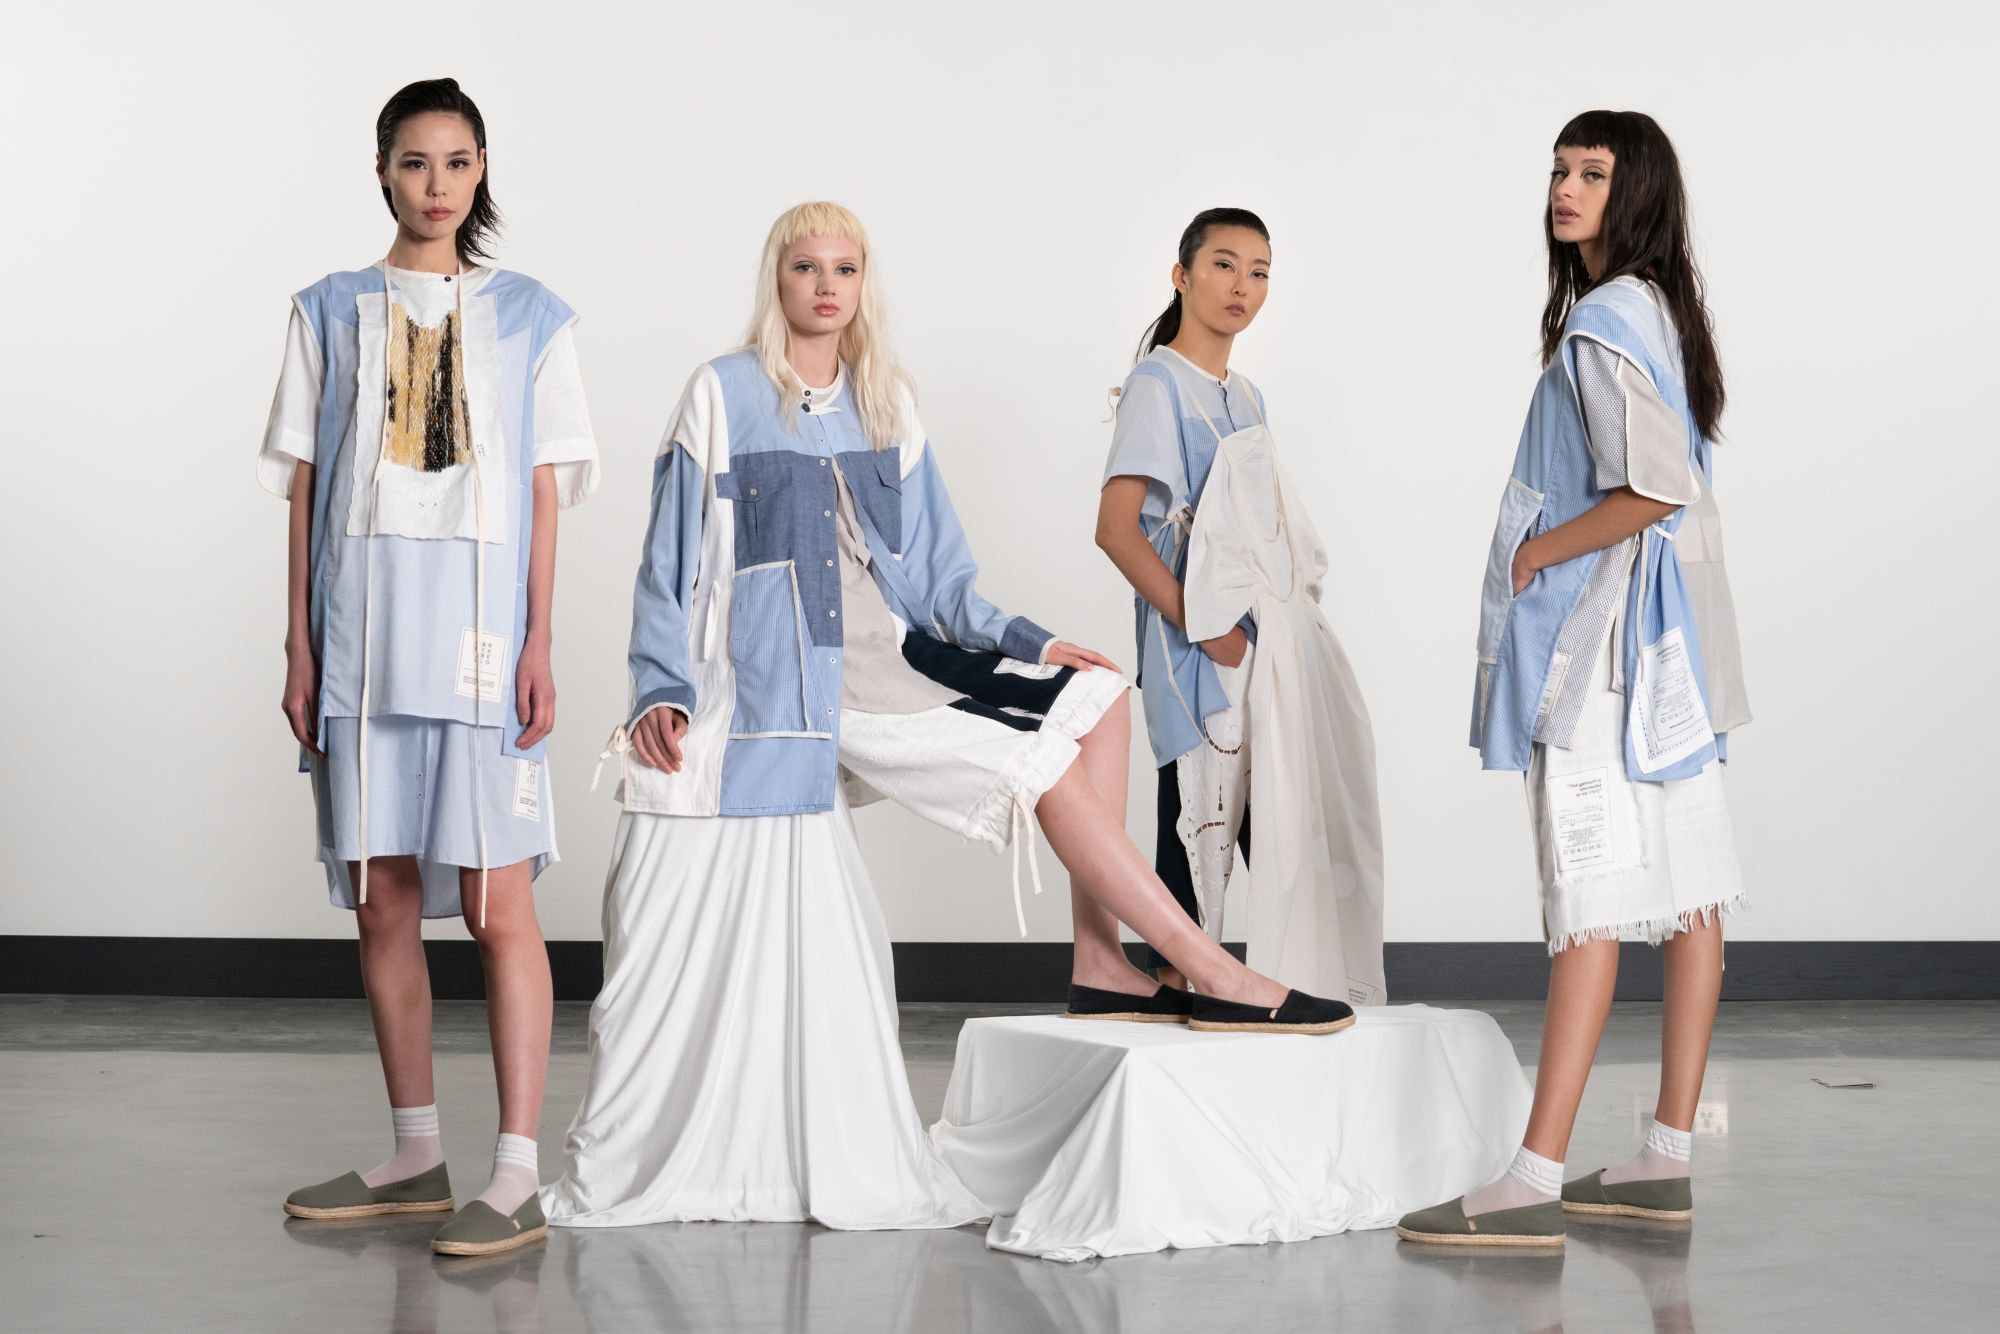 Meet The 2020 Winners Of The World's Largest Sustainable Fashion Design Competition